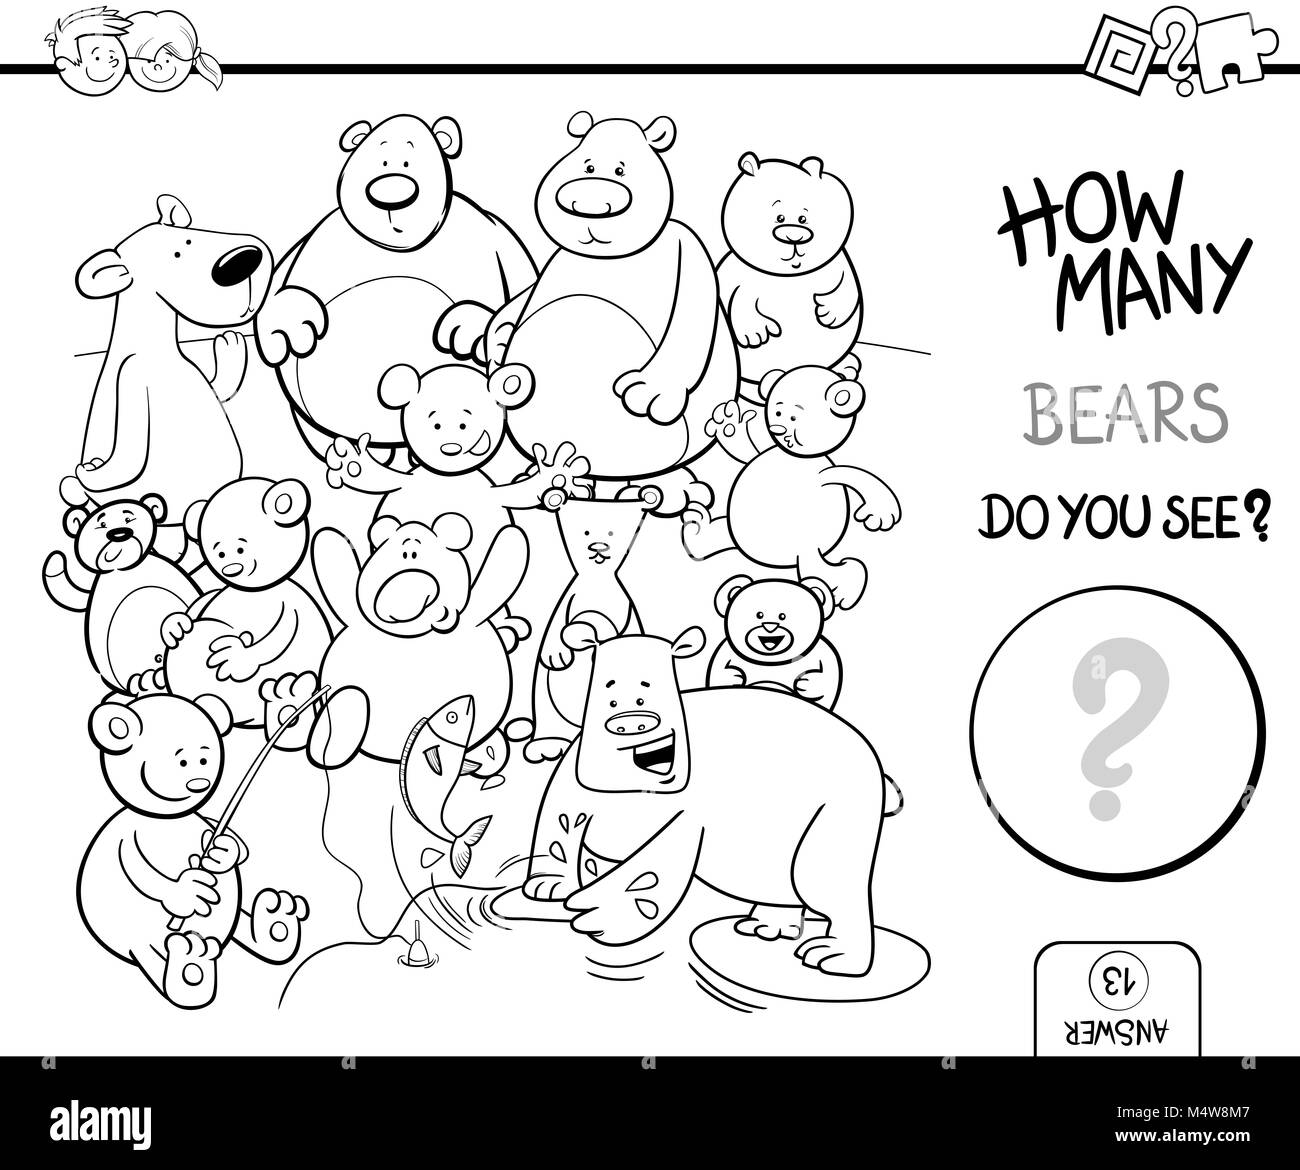 counting bears coloring book activity Stock Photo: 175117943 ...